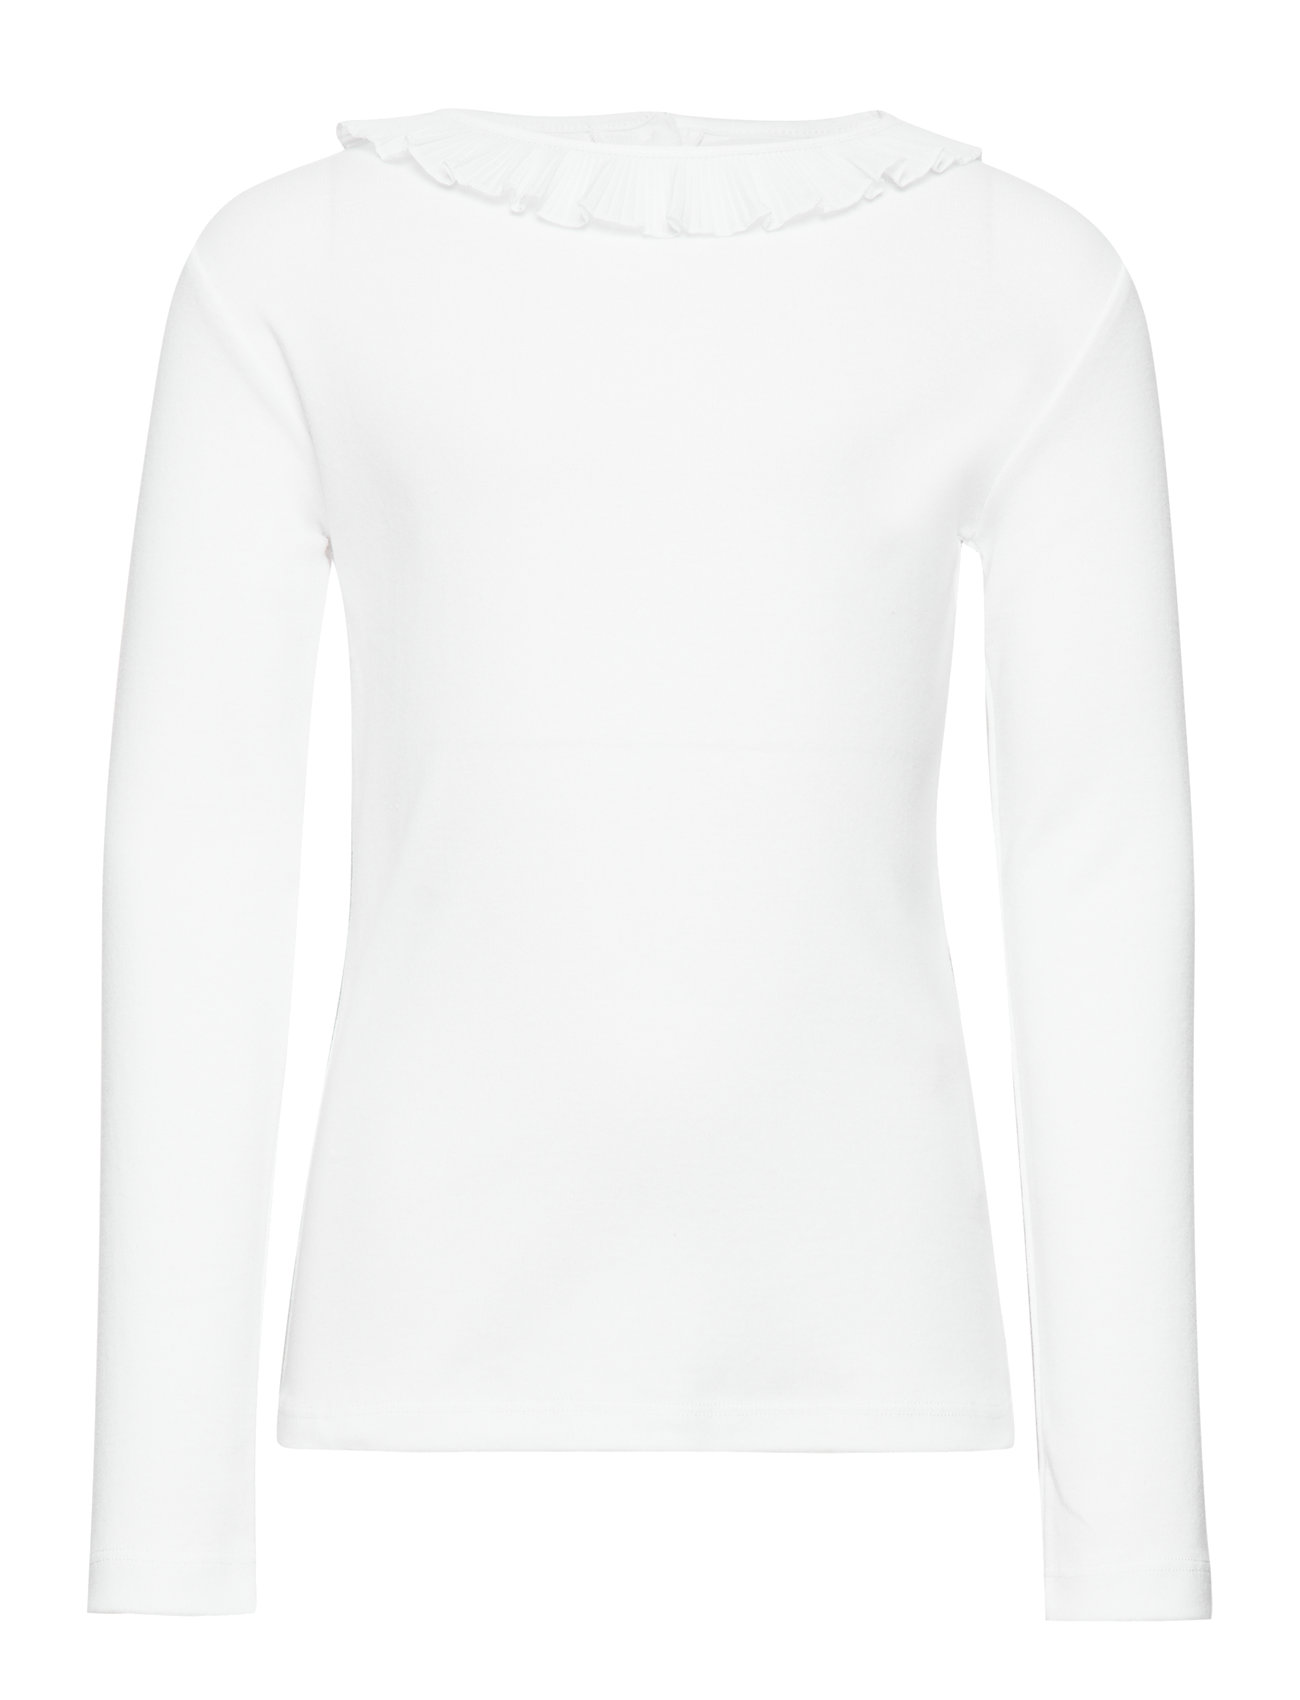 Noa Noa Miniature T-shirt - WHITE